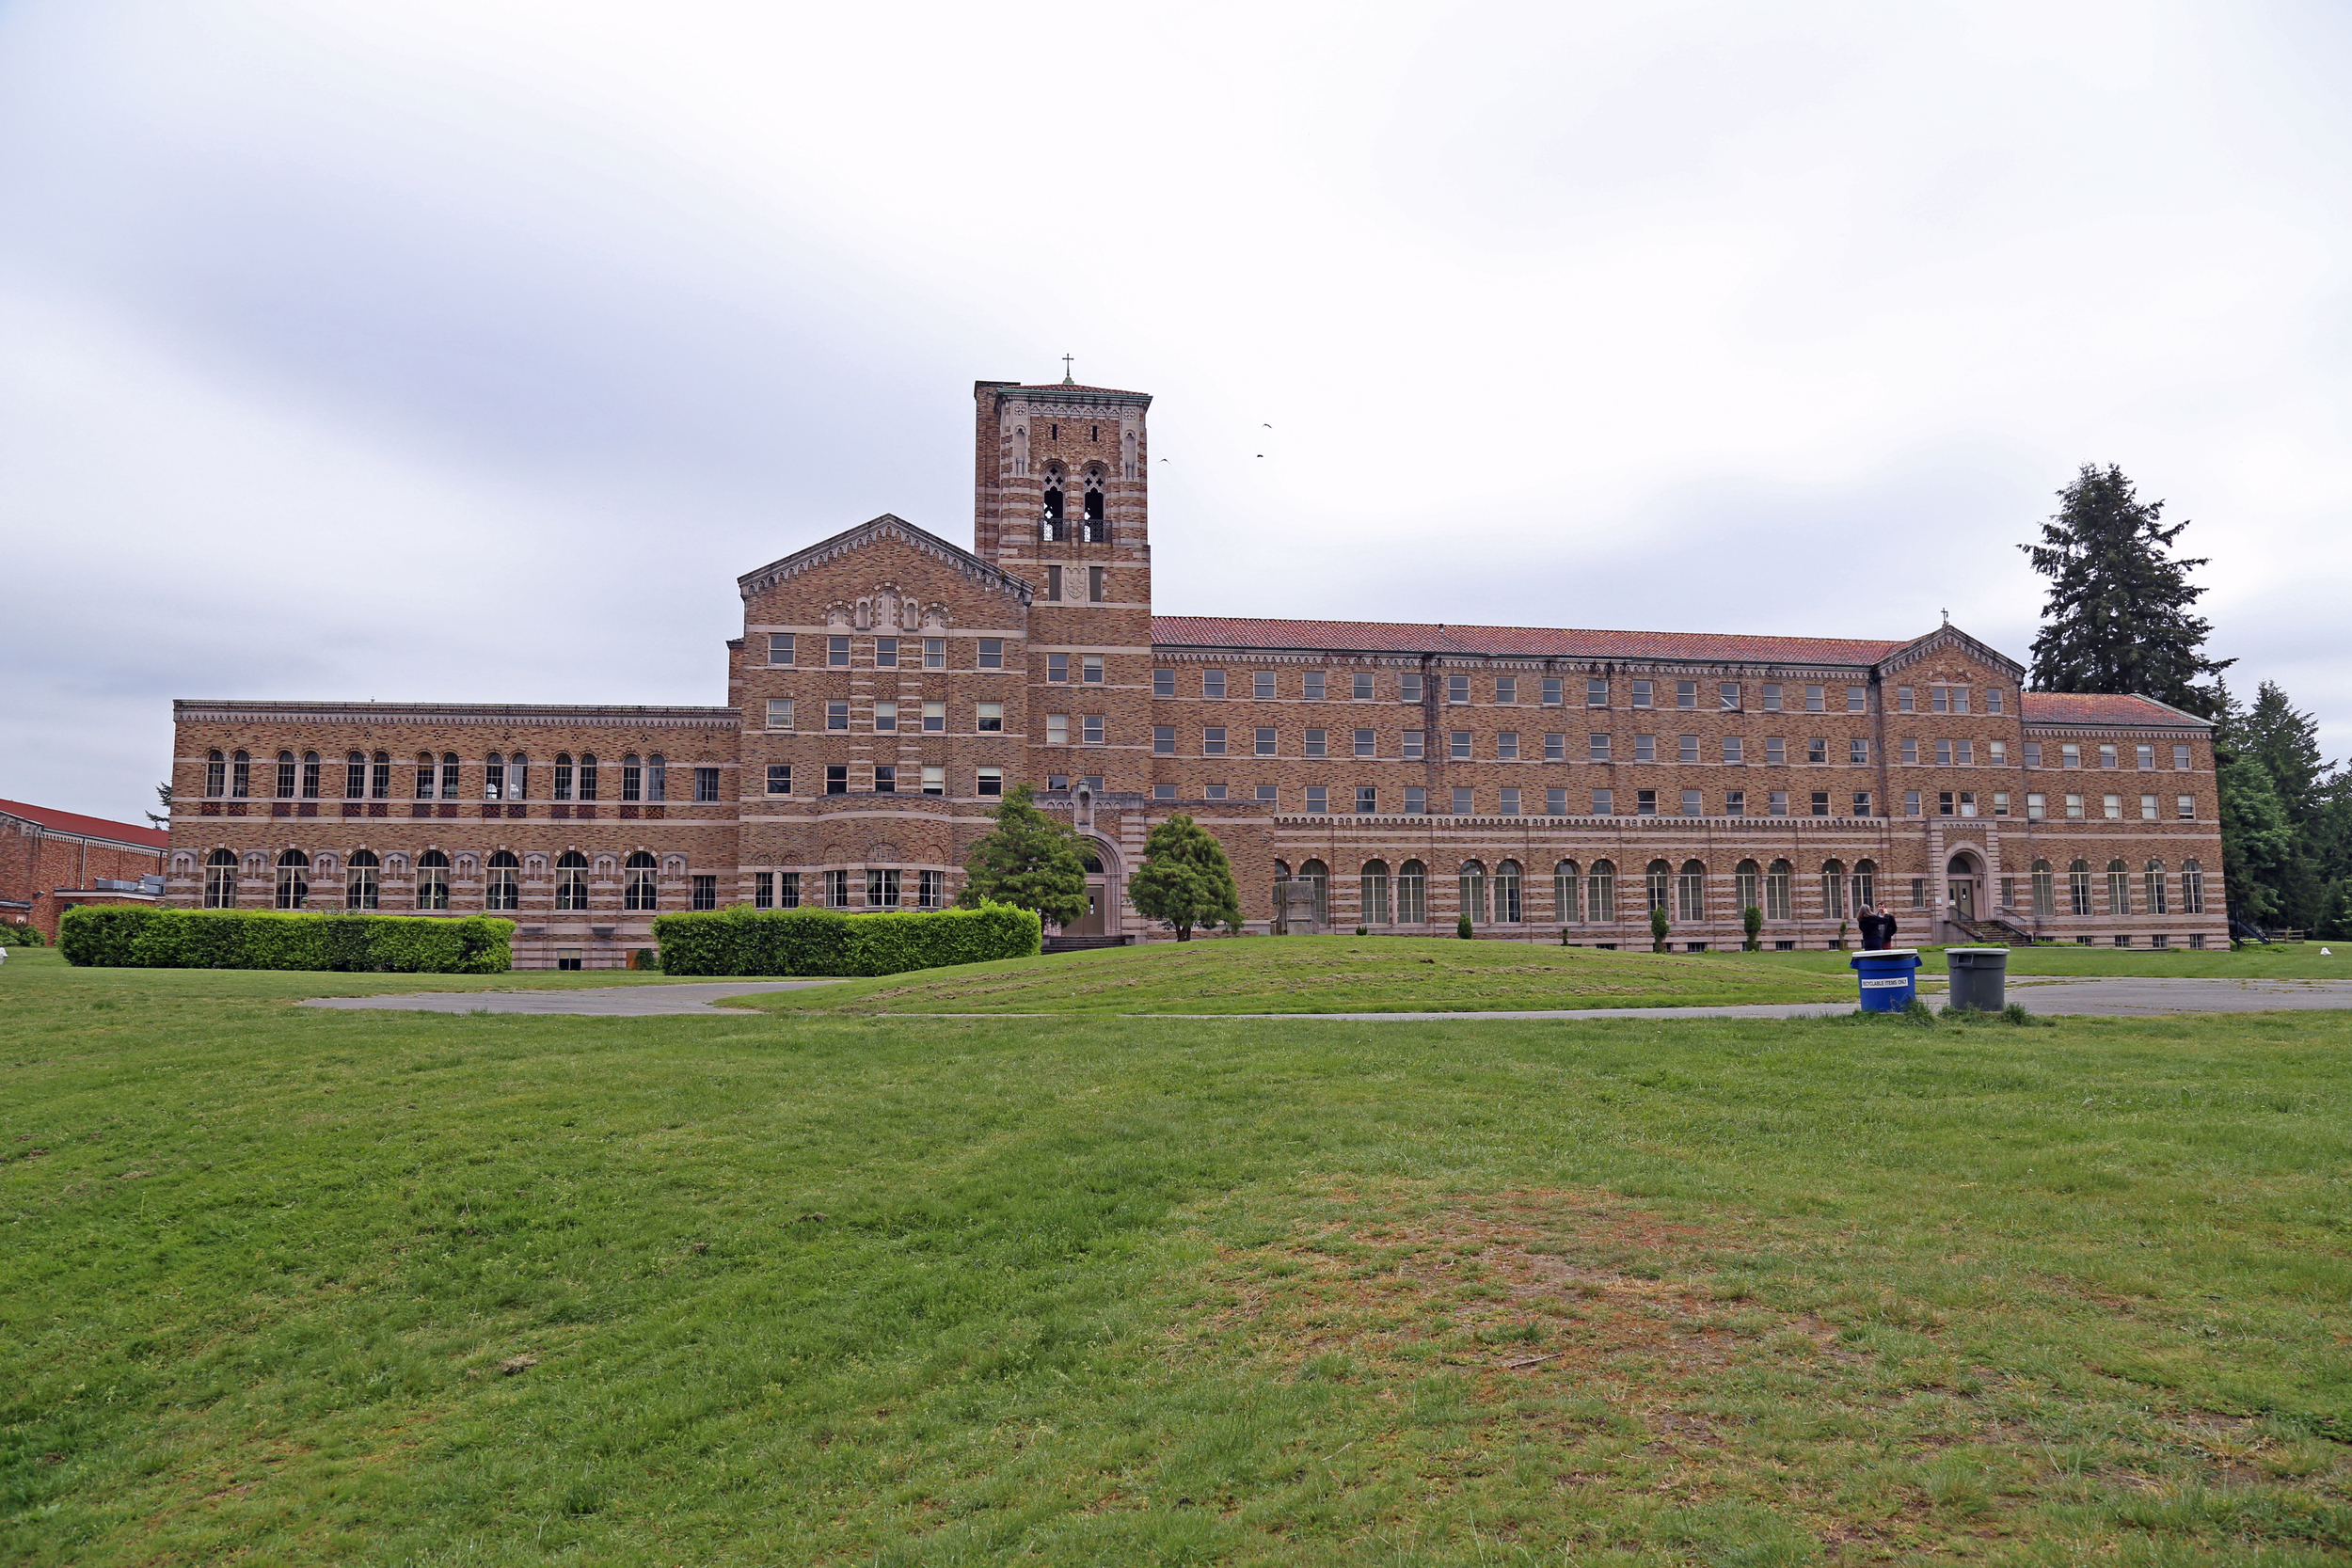 The Catholic Seminary, which sits on the park grounds.